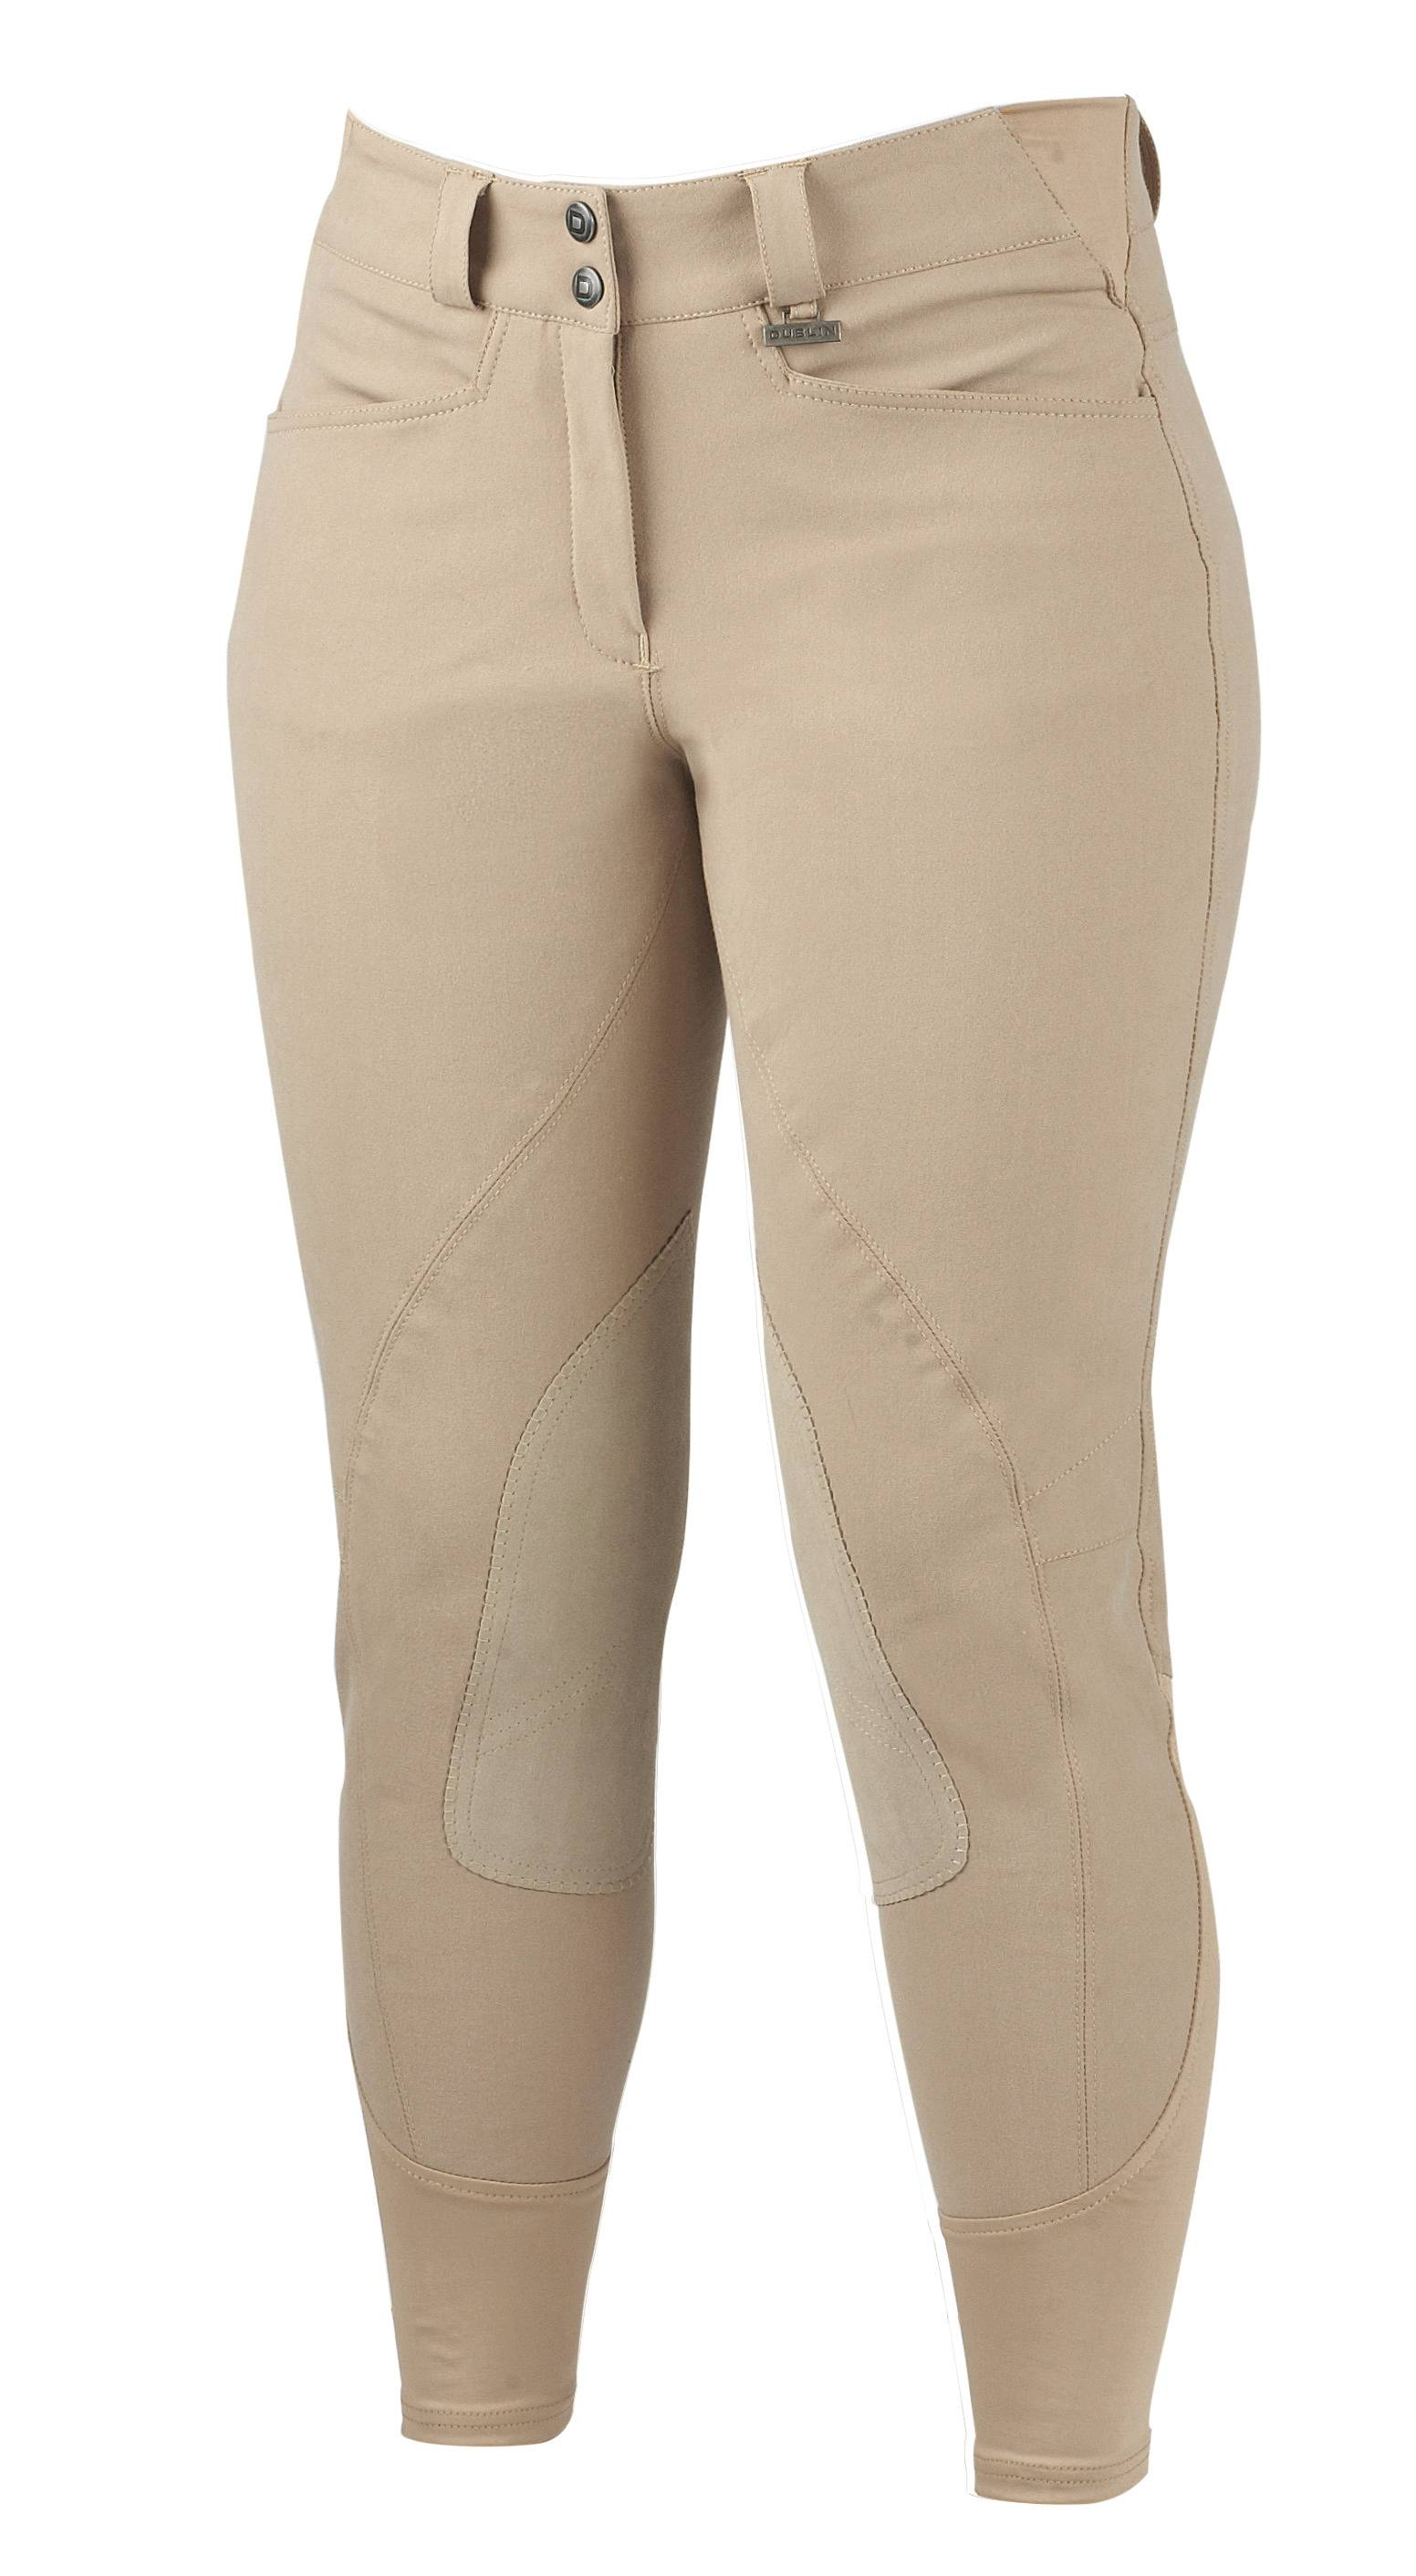 Dublin Performance Shapely Breeches - Ladies, EuroSeat